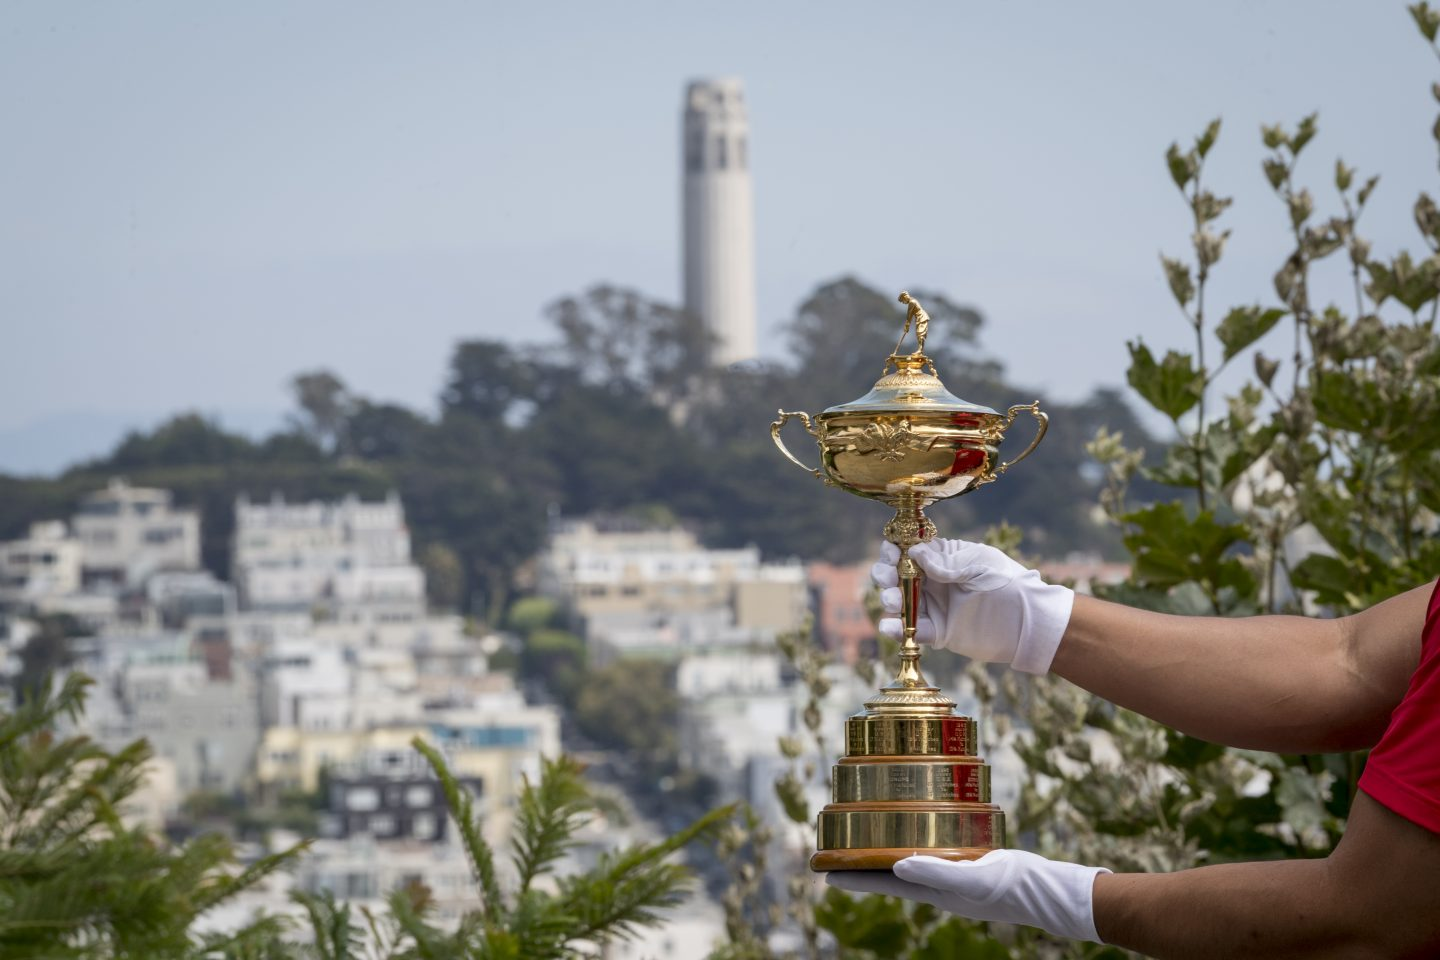 The Ryder Cup trophy is displayed for viewing by fans and tourist on September 6, 2018 in San Francisco, California, Ryder cup, sport, golf, competitive sport, goals, motivation, adidas, GamePlan A